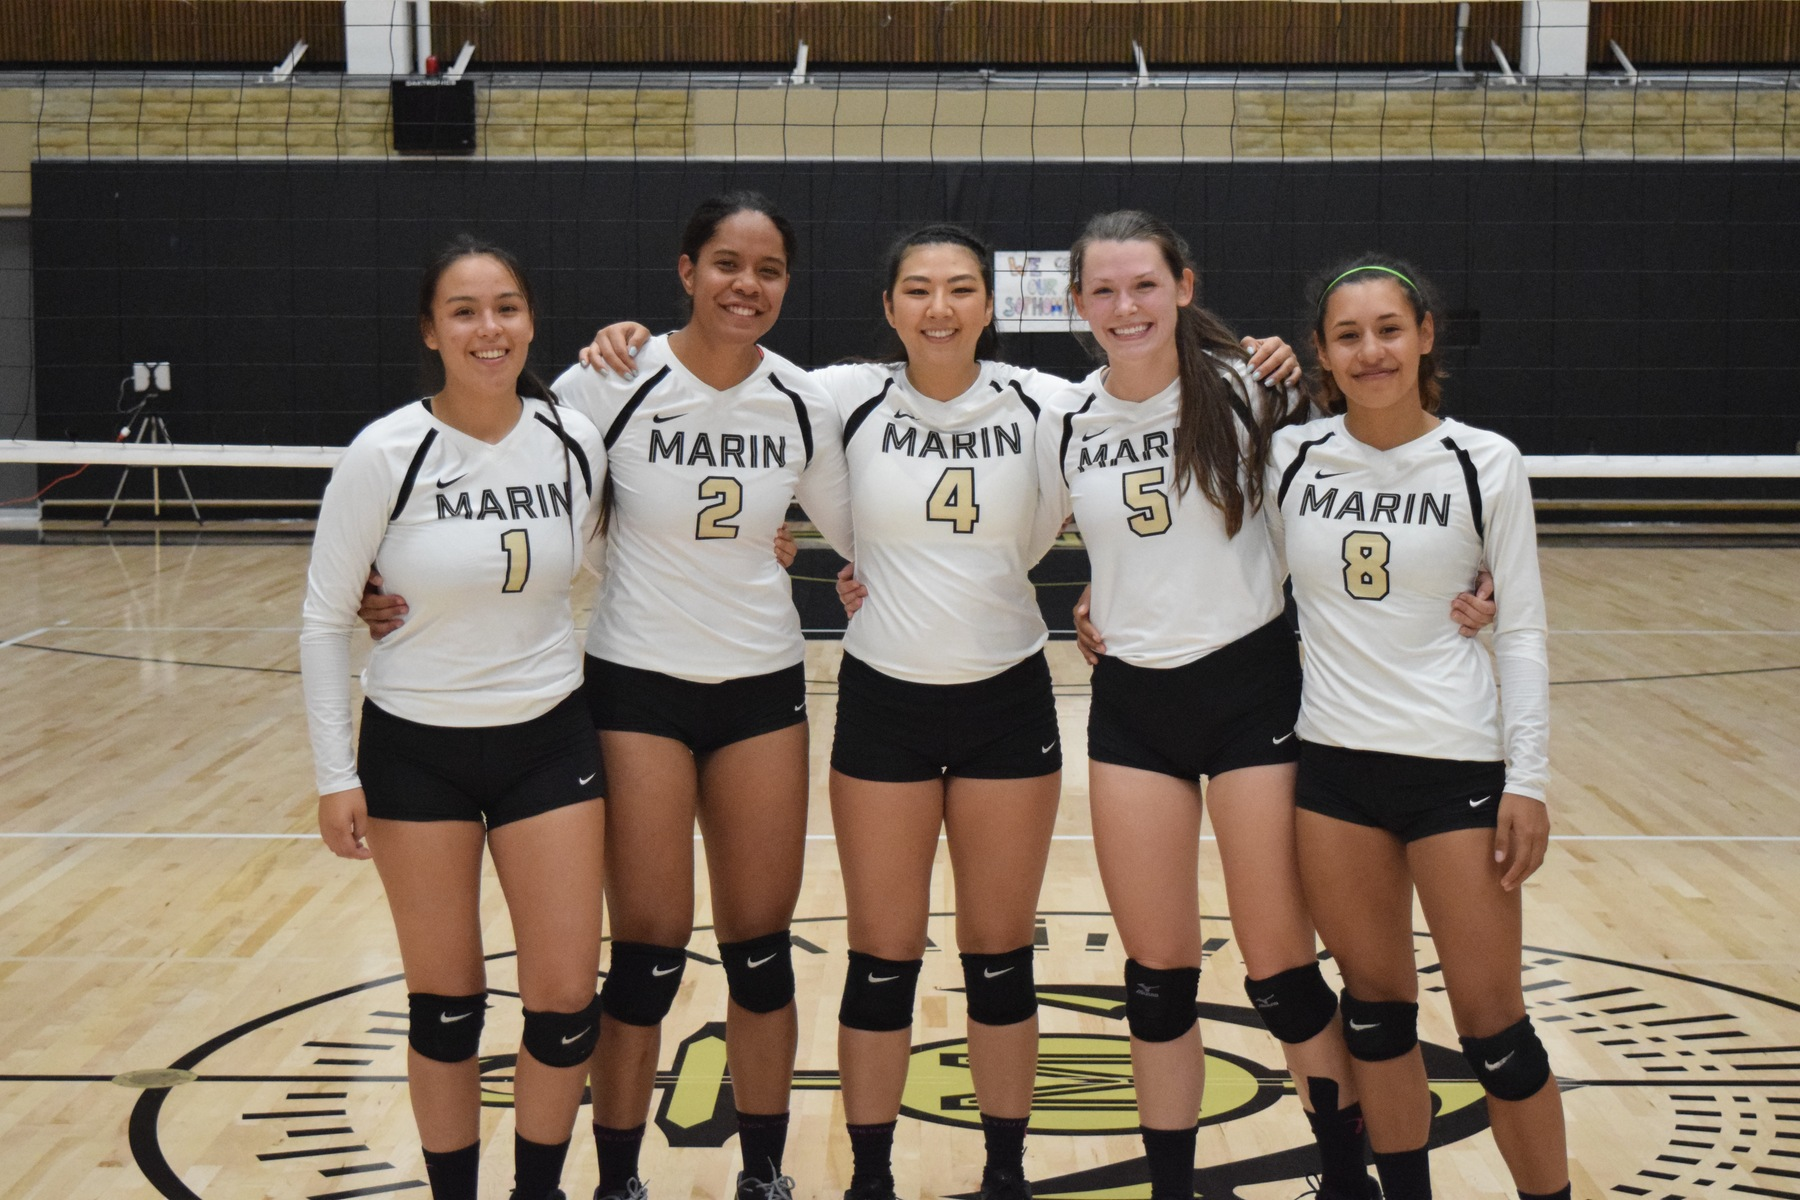 College of Marin Volleyball Ends Season With 3-0 Loss At Yuba In Sophomore's Final Match